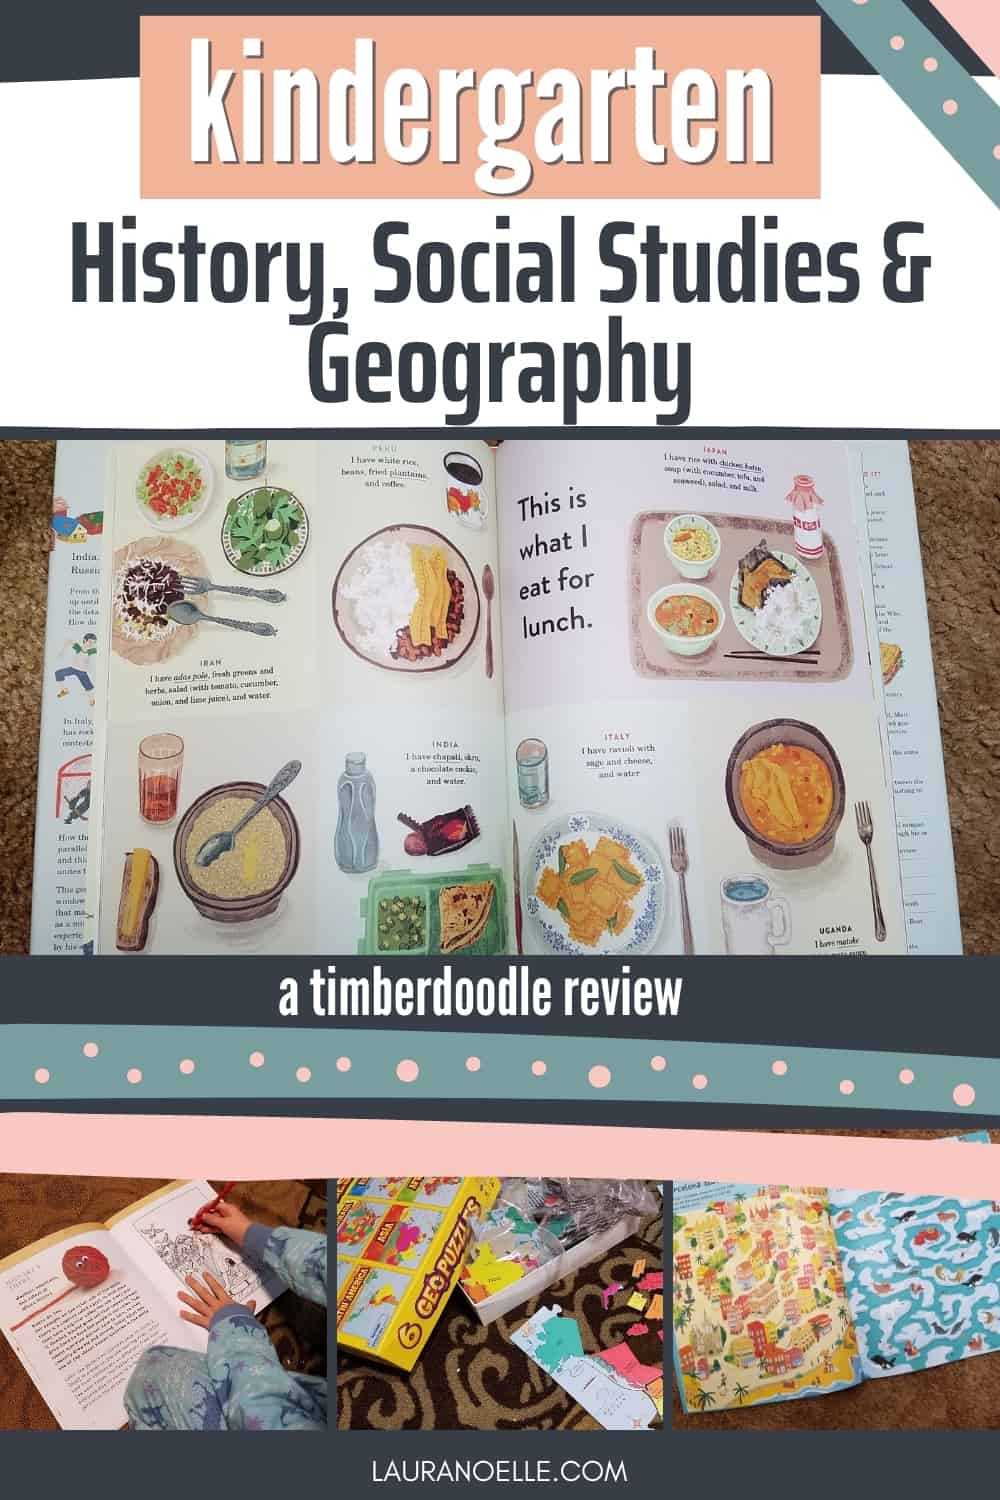 Young children are fascinated by the great big world around them and often amazed at the idea that so much of the world out there is different than what they see every day. Here's what we thought of Timberdood's materials introducing history and geography in their Kindergarten curriculum.